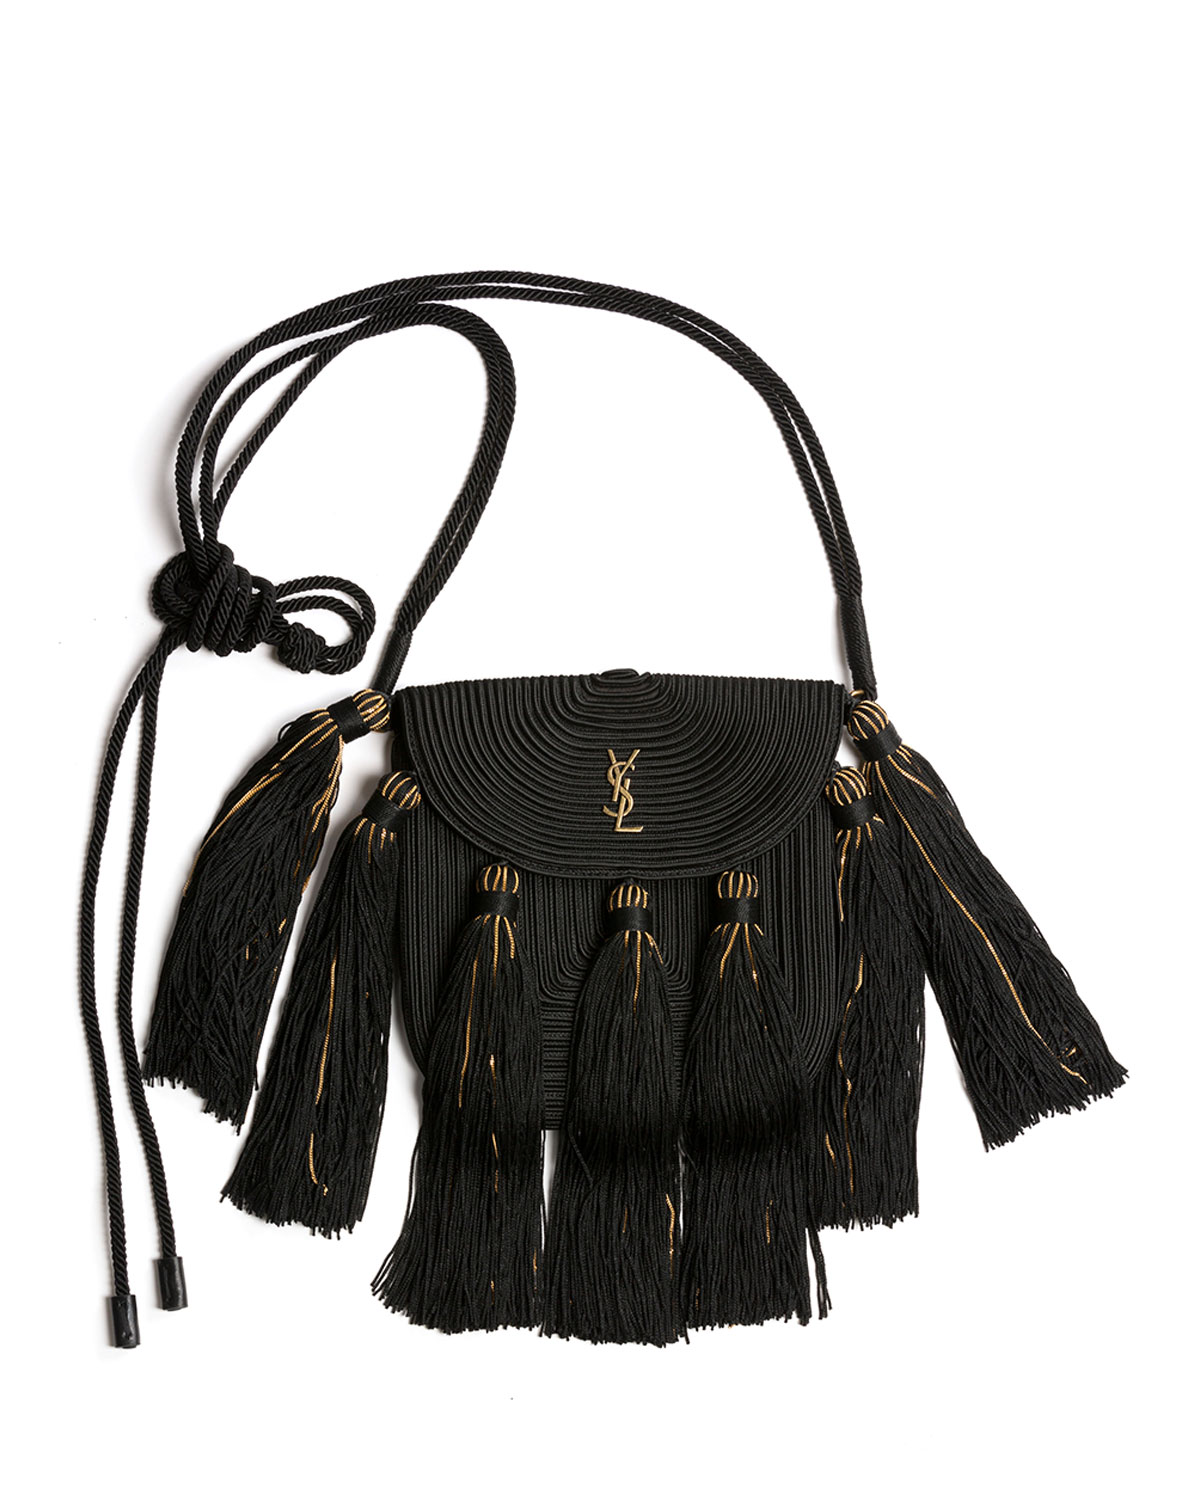 59c54ffa969c Saint LaurentVintage Passementerie Small Monogram YSL Shoulder Bag with  Tassels - Golden Hardware